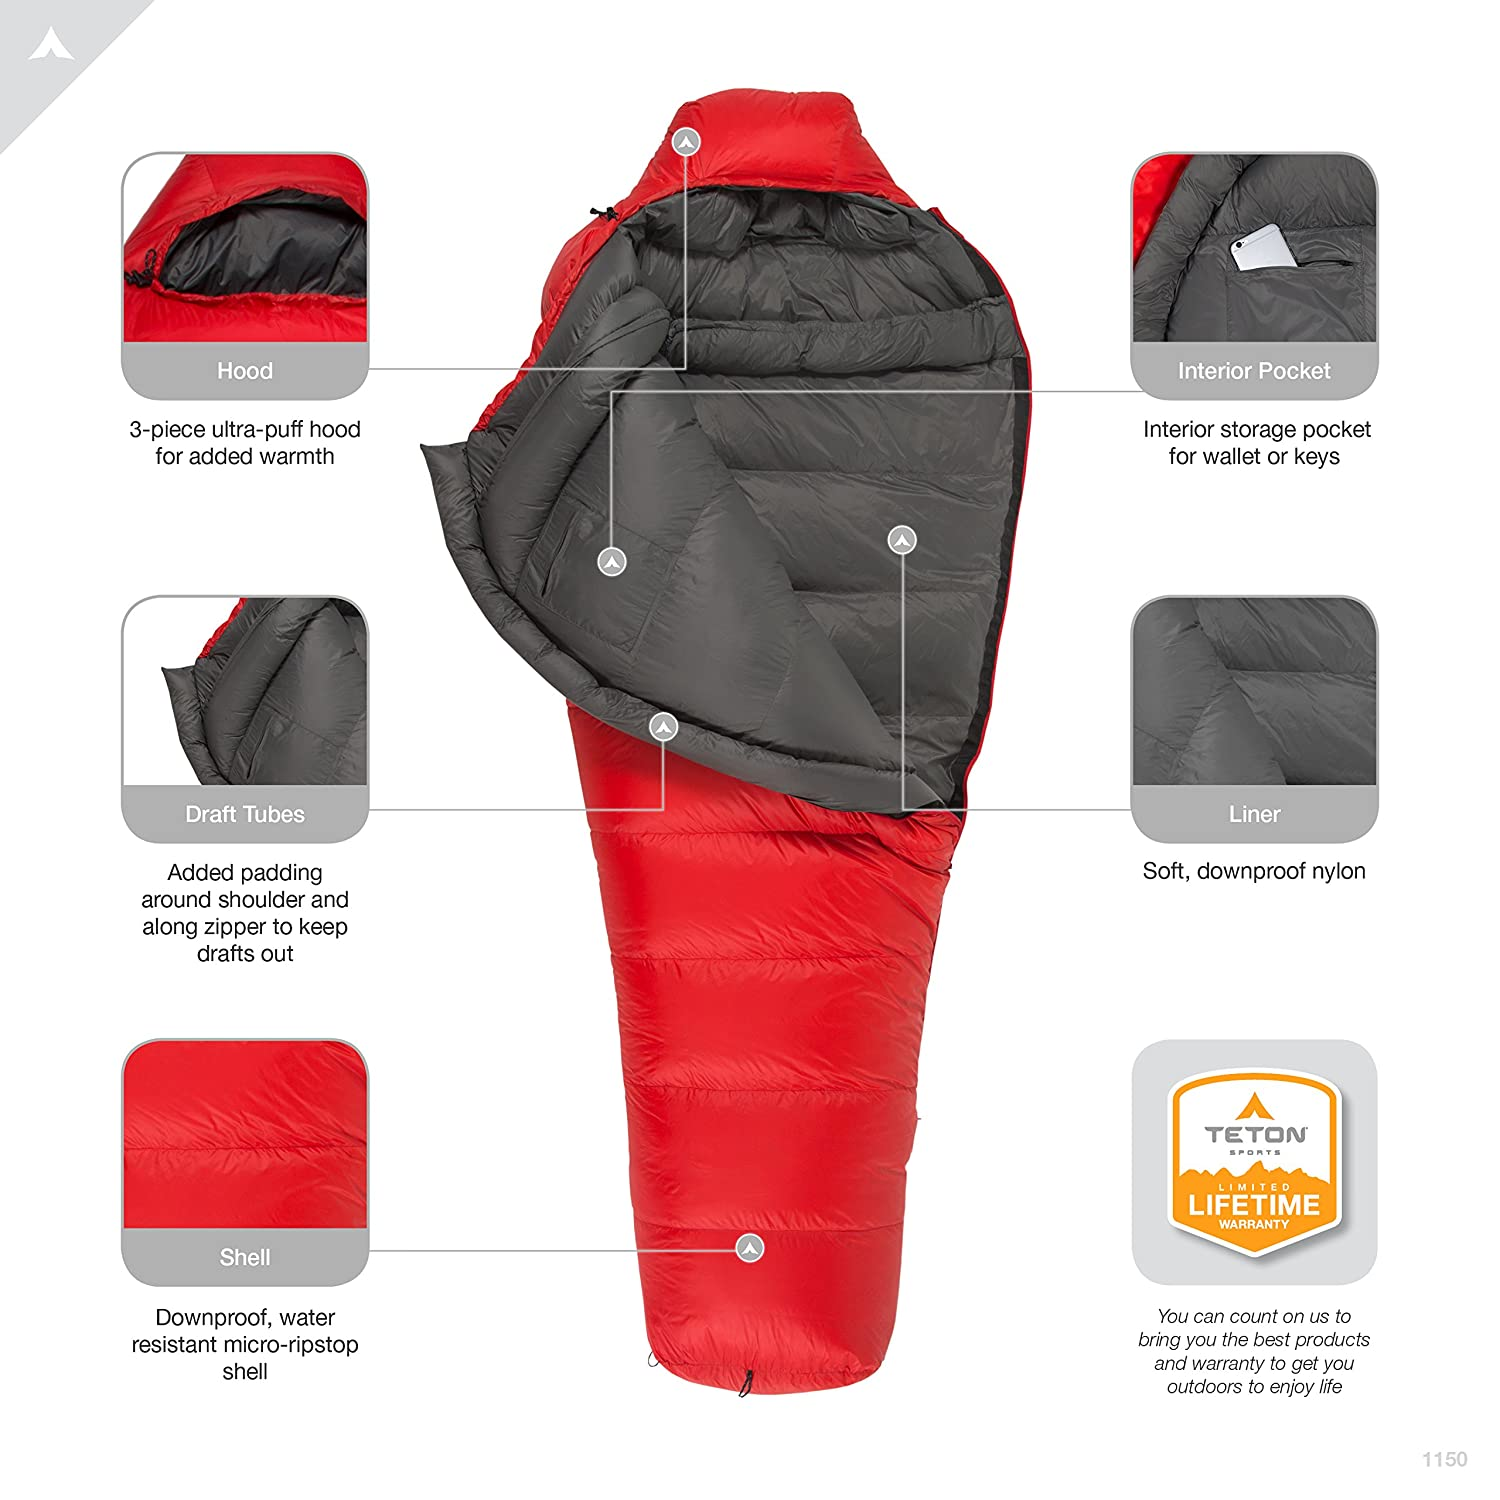 18C Down Ultralight Mummy Sleeping Bag Perfect for Camping TETON Sports Altos and Backpacking; Lightweight All-Season Mummy Bag; Compression Sack Included Hiking